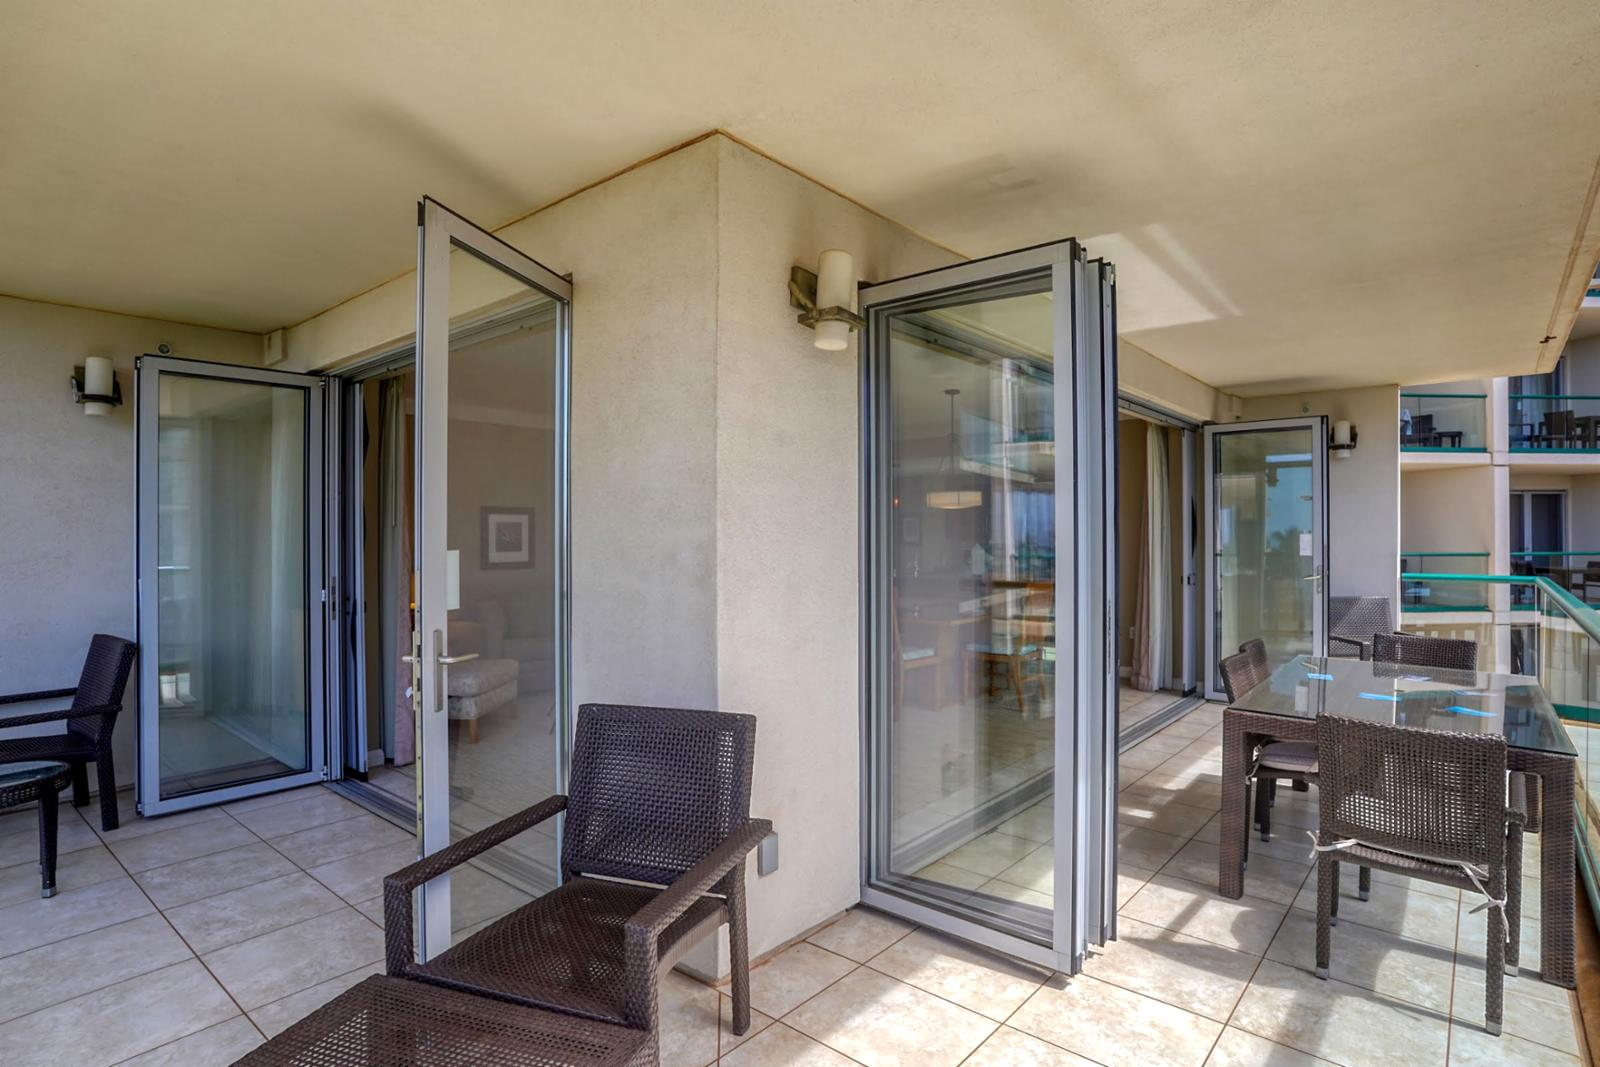 Luxury Nano doors that open wide to create indoor and outdoor living